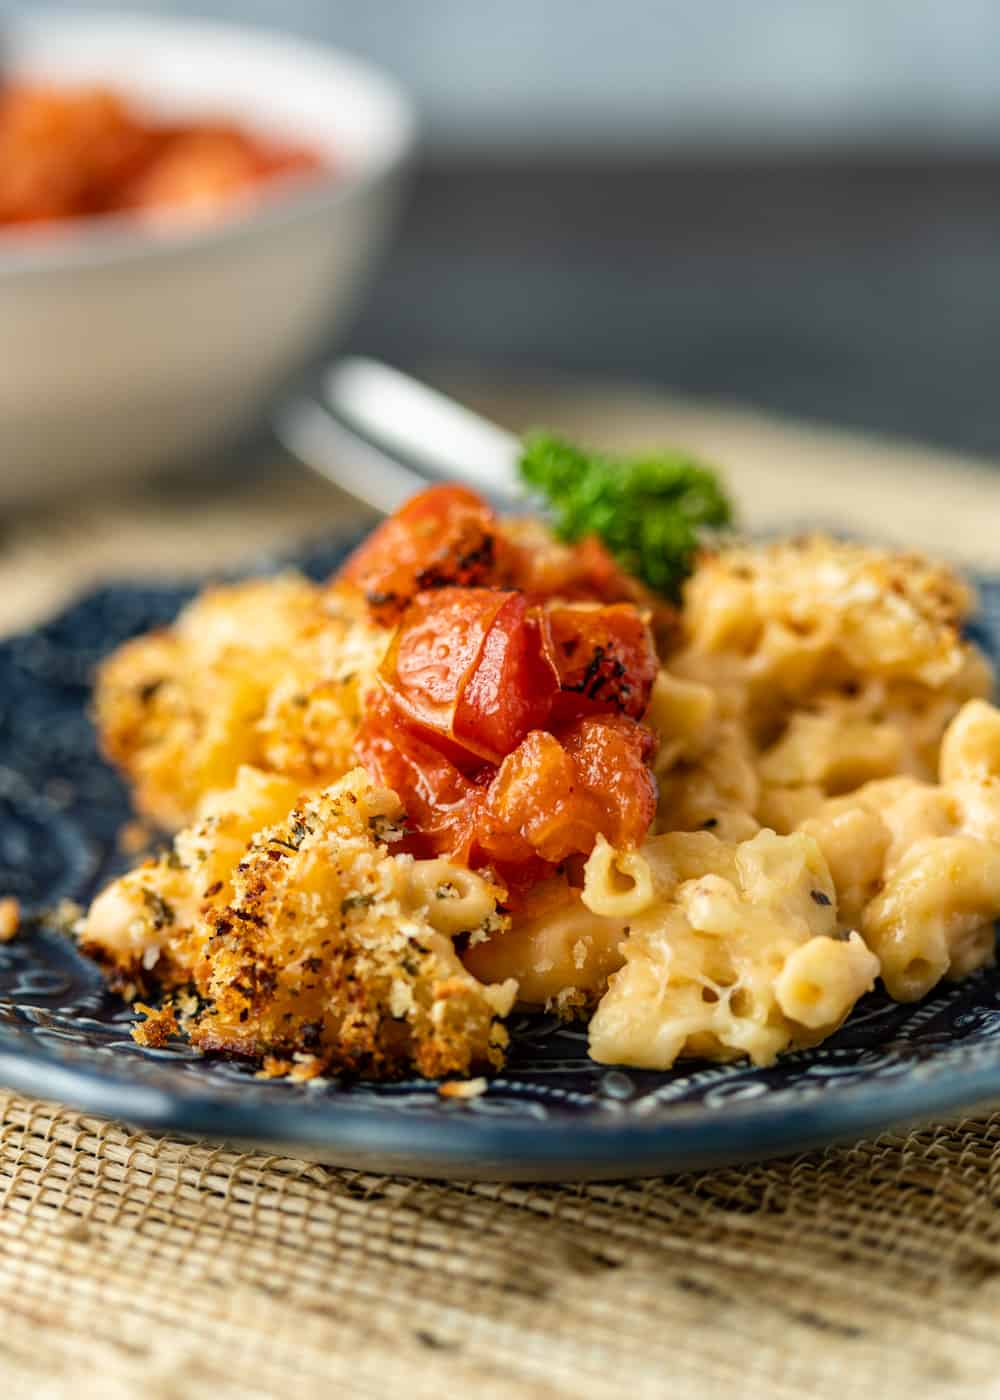 creamy cheddar cheese and macaroni dinner topped with toasted breadcrumbs and fire roasted tomatoes